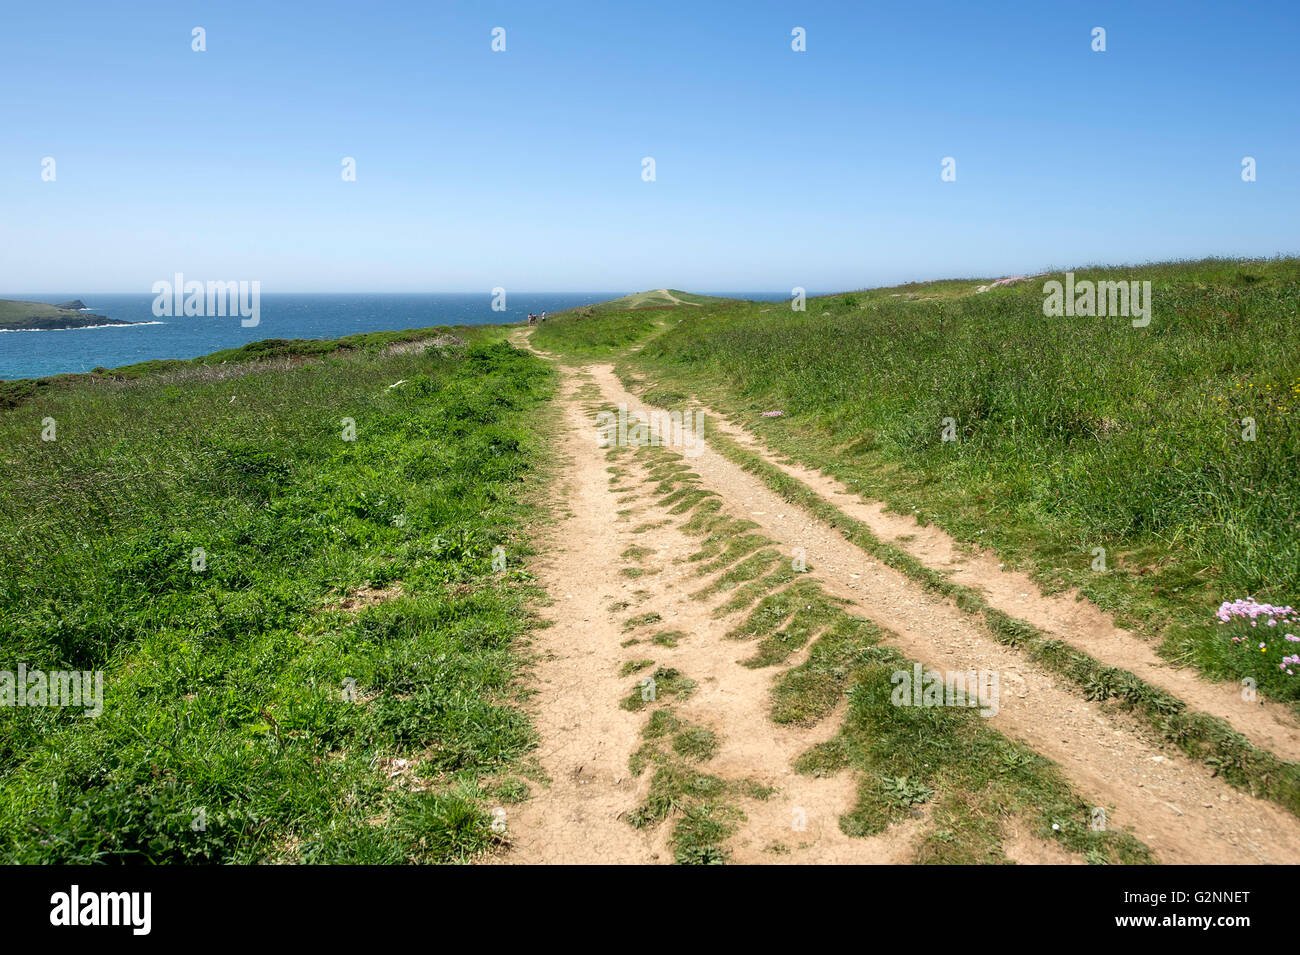 A worn footpath on East Pentire Headland in Newquay, Cornwall. - Stock Image